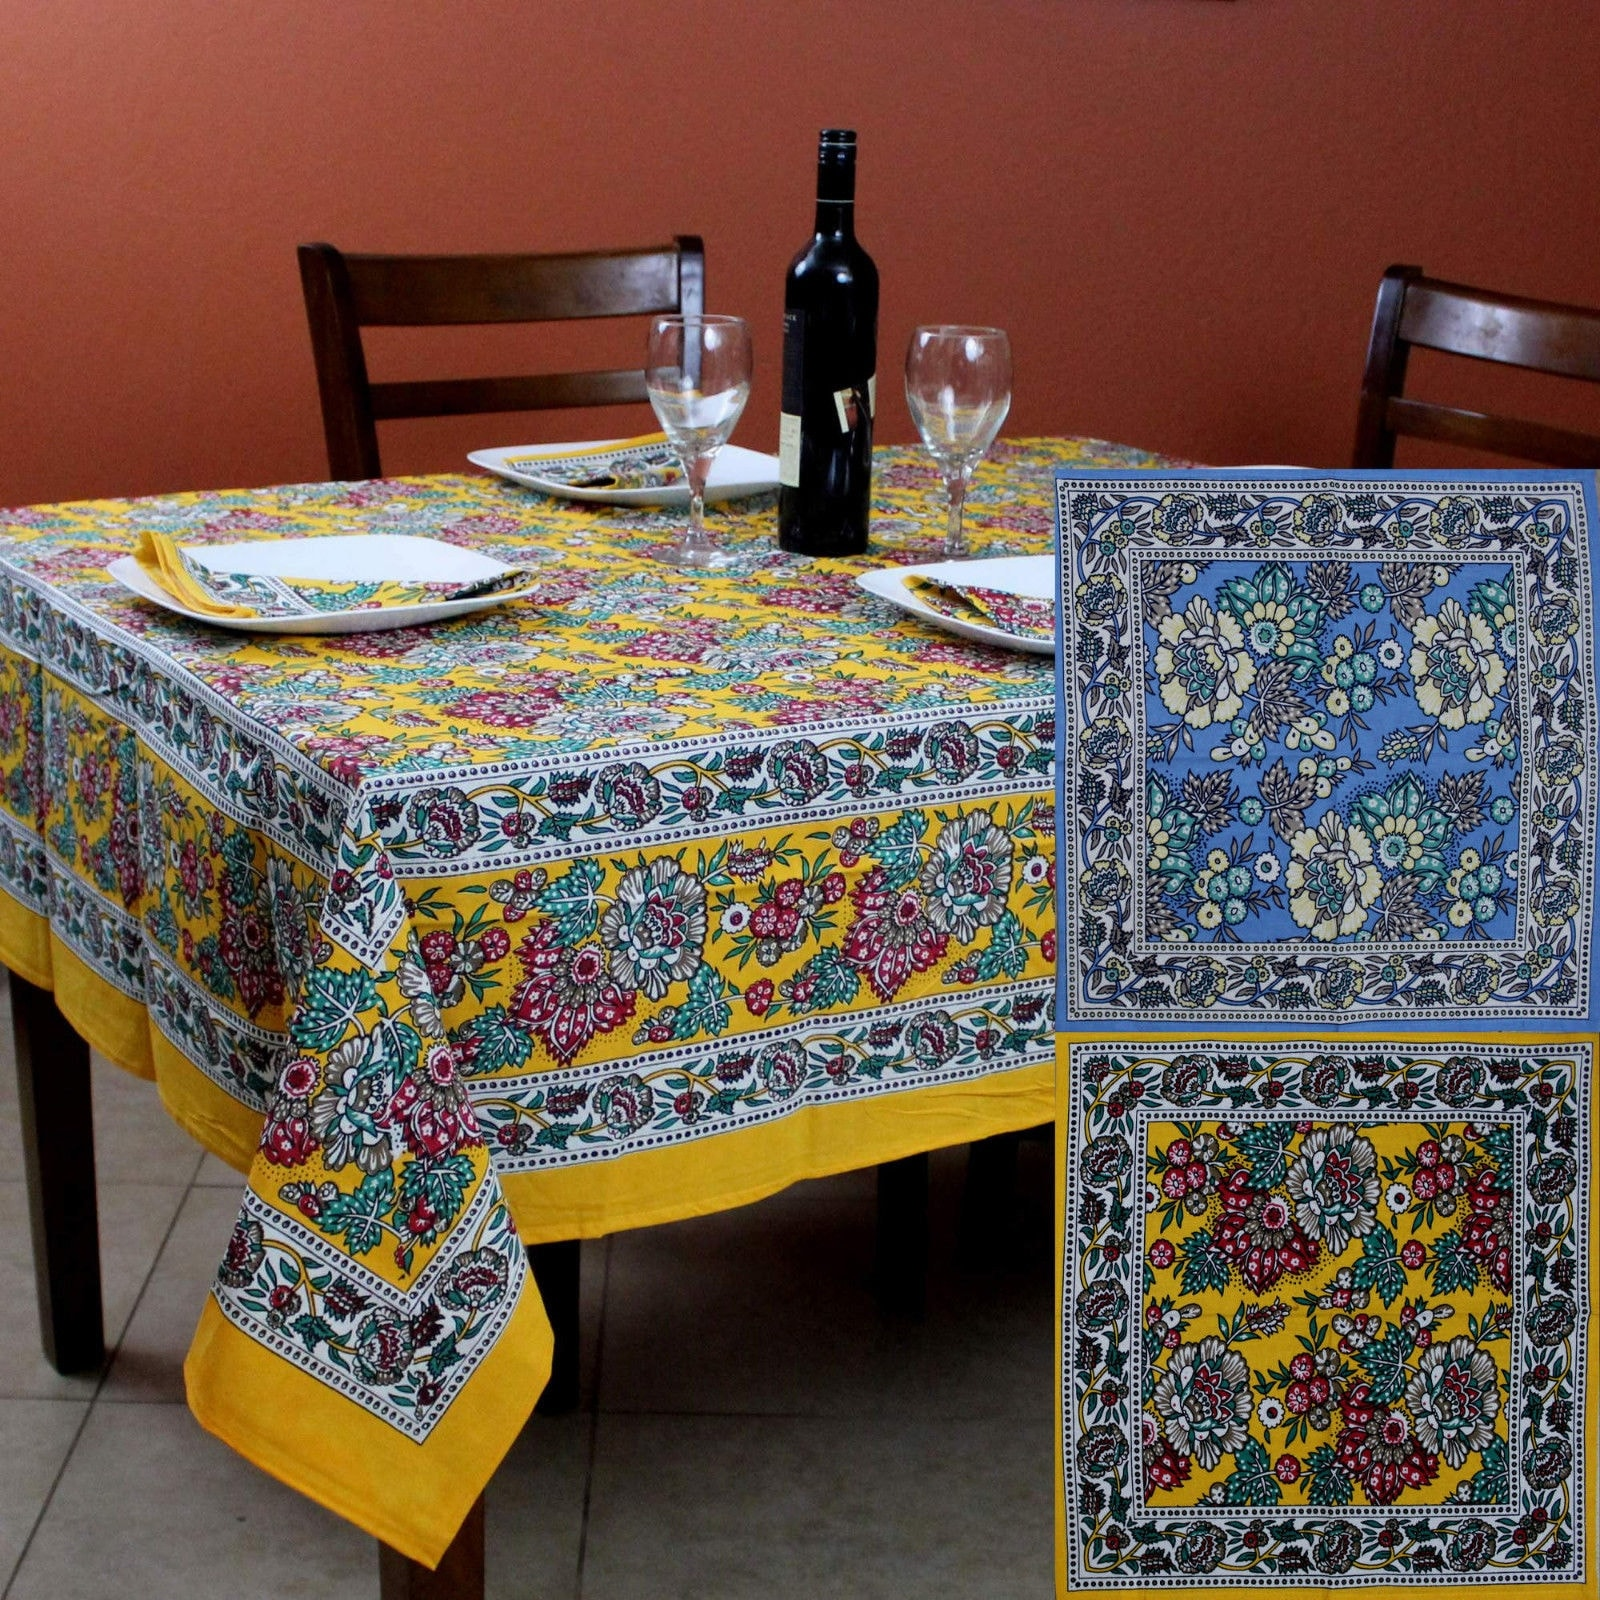 Etonnant Cotton French Country Floral Tablecloth Square 72 X 72 Inches Table Linen